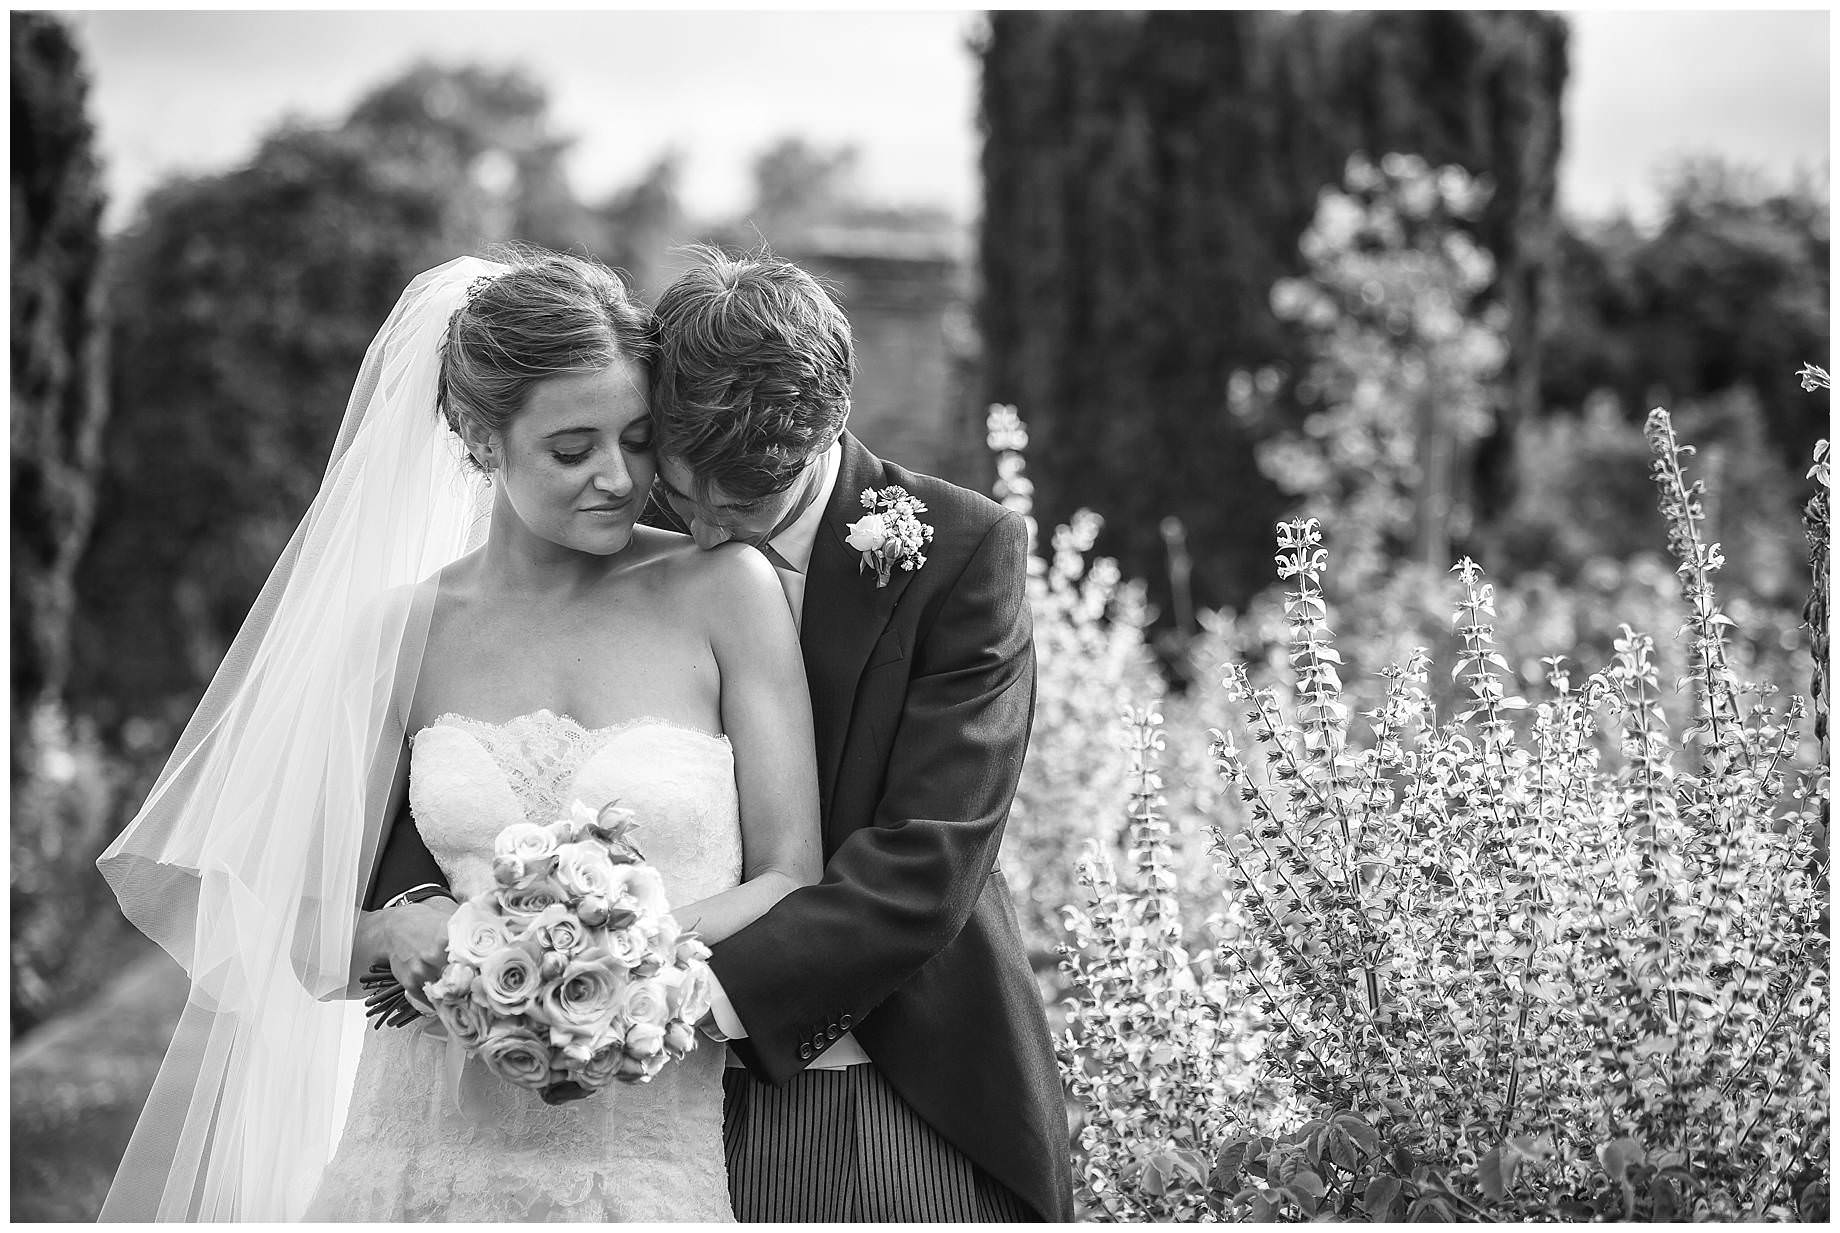 black and white shot of the bride and groom surrounded by flowers. The groom kissing the brides shoulder.